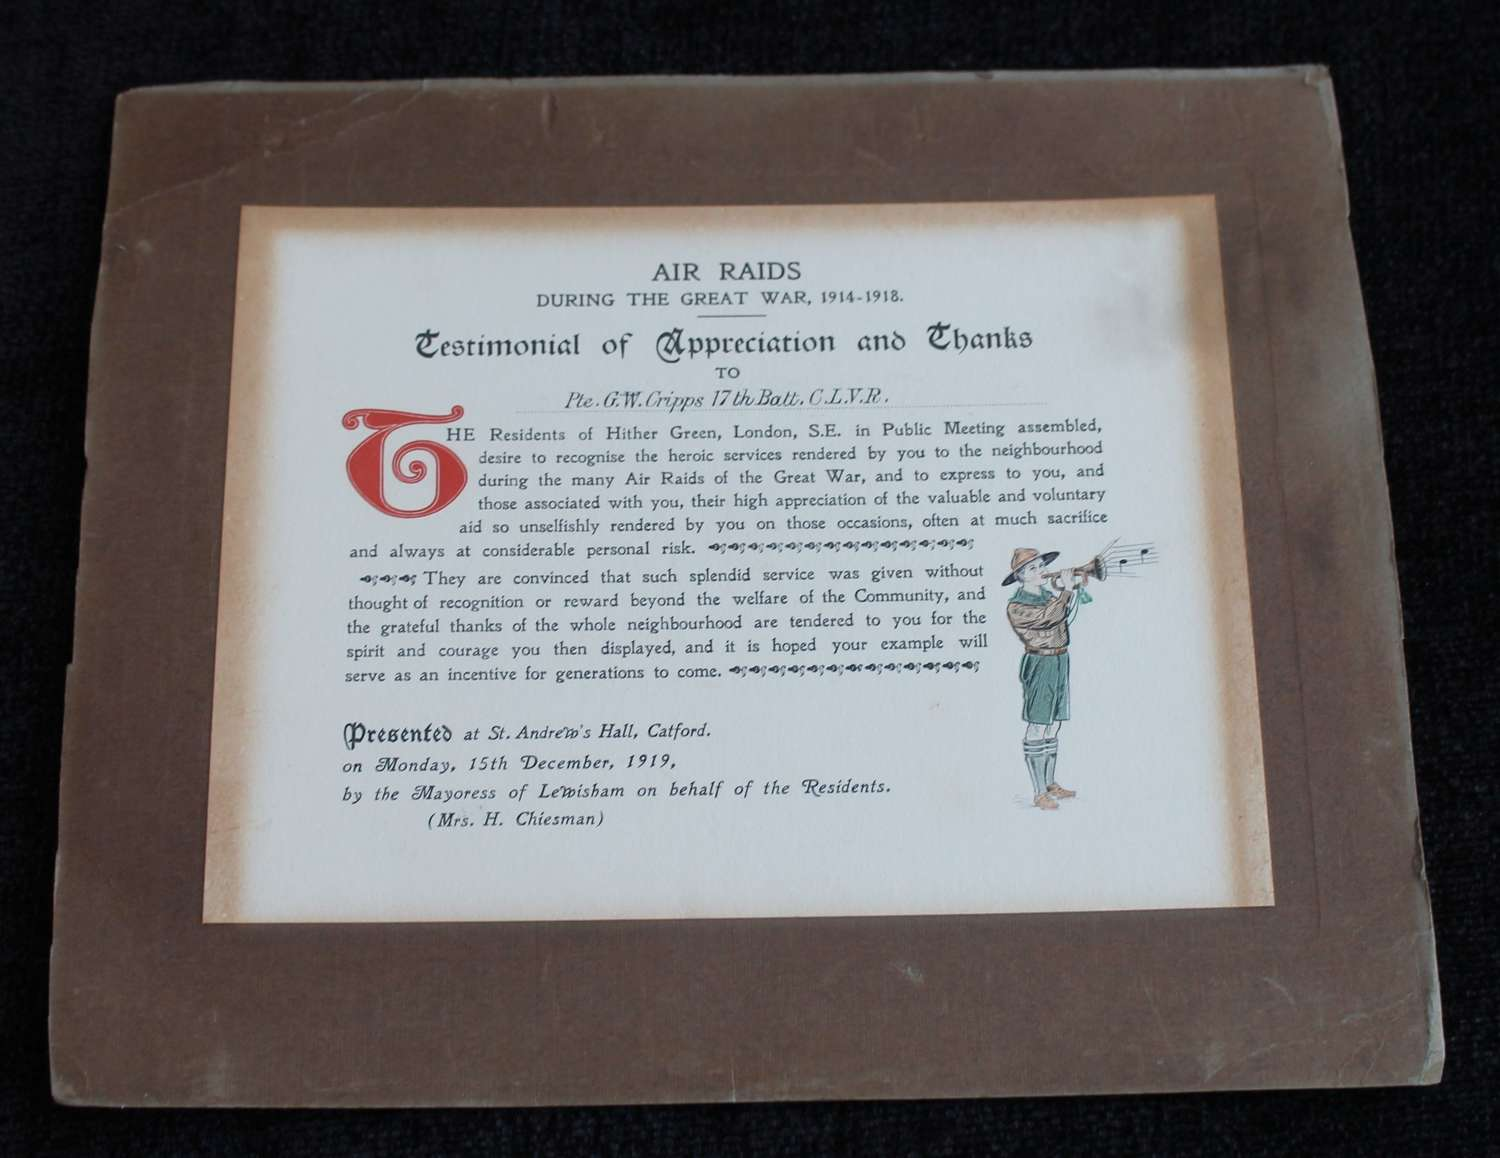 Rare Great War Air Raid Commendation Certificate